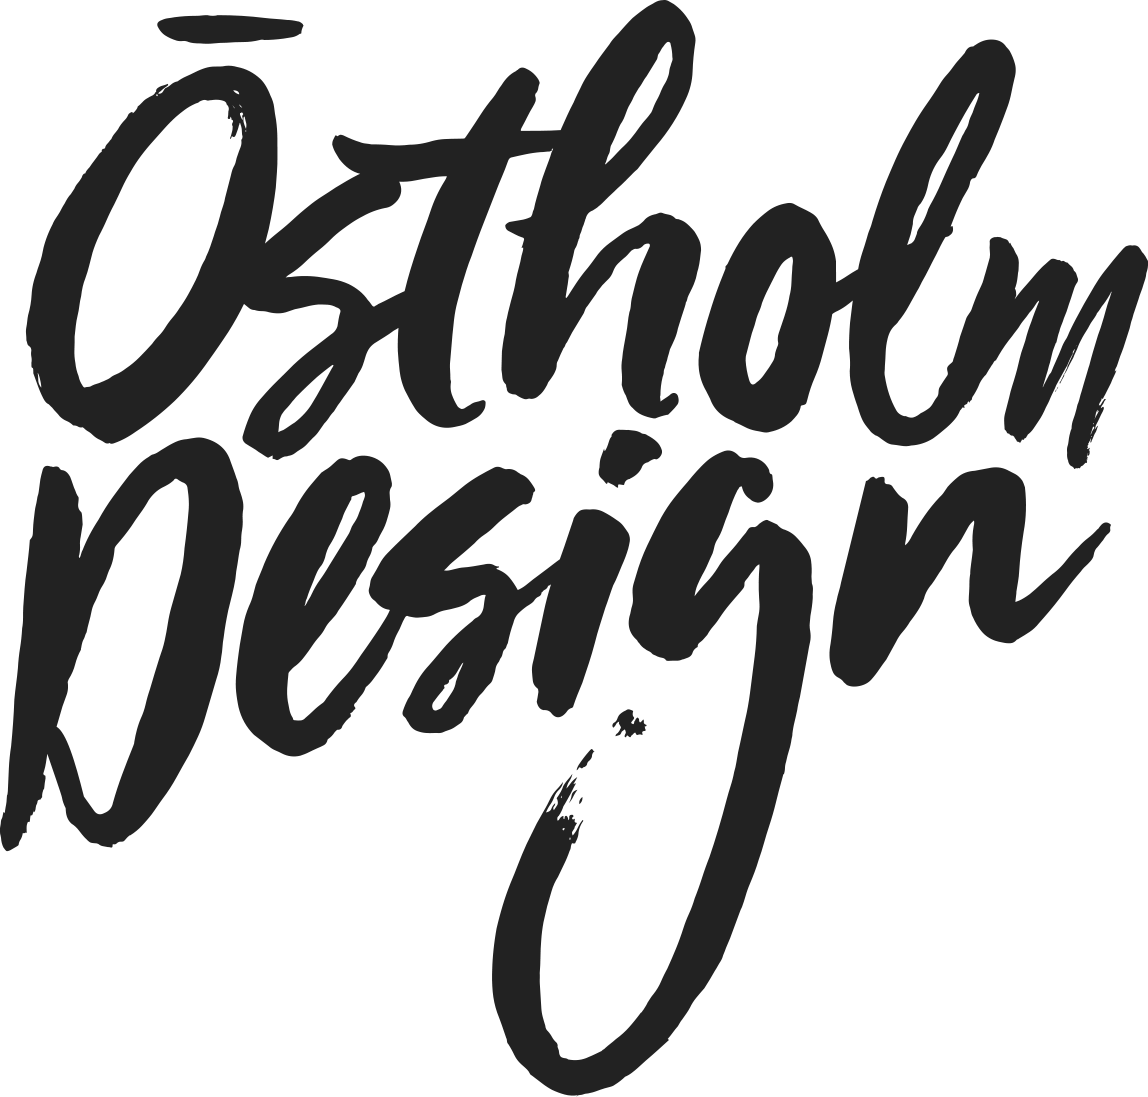 Östholm Design - Digital designer in Stockholm